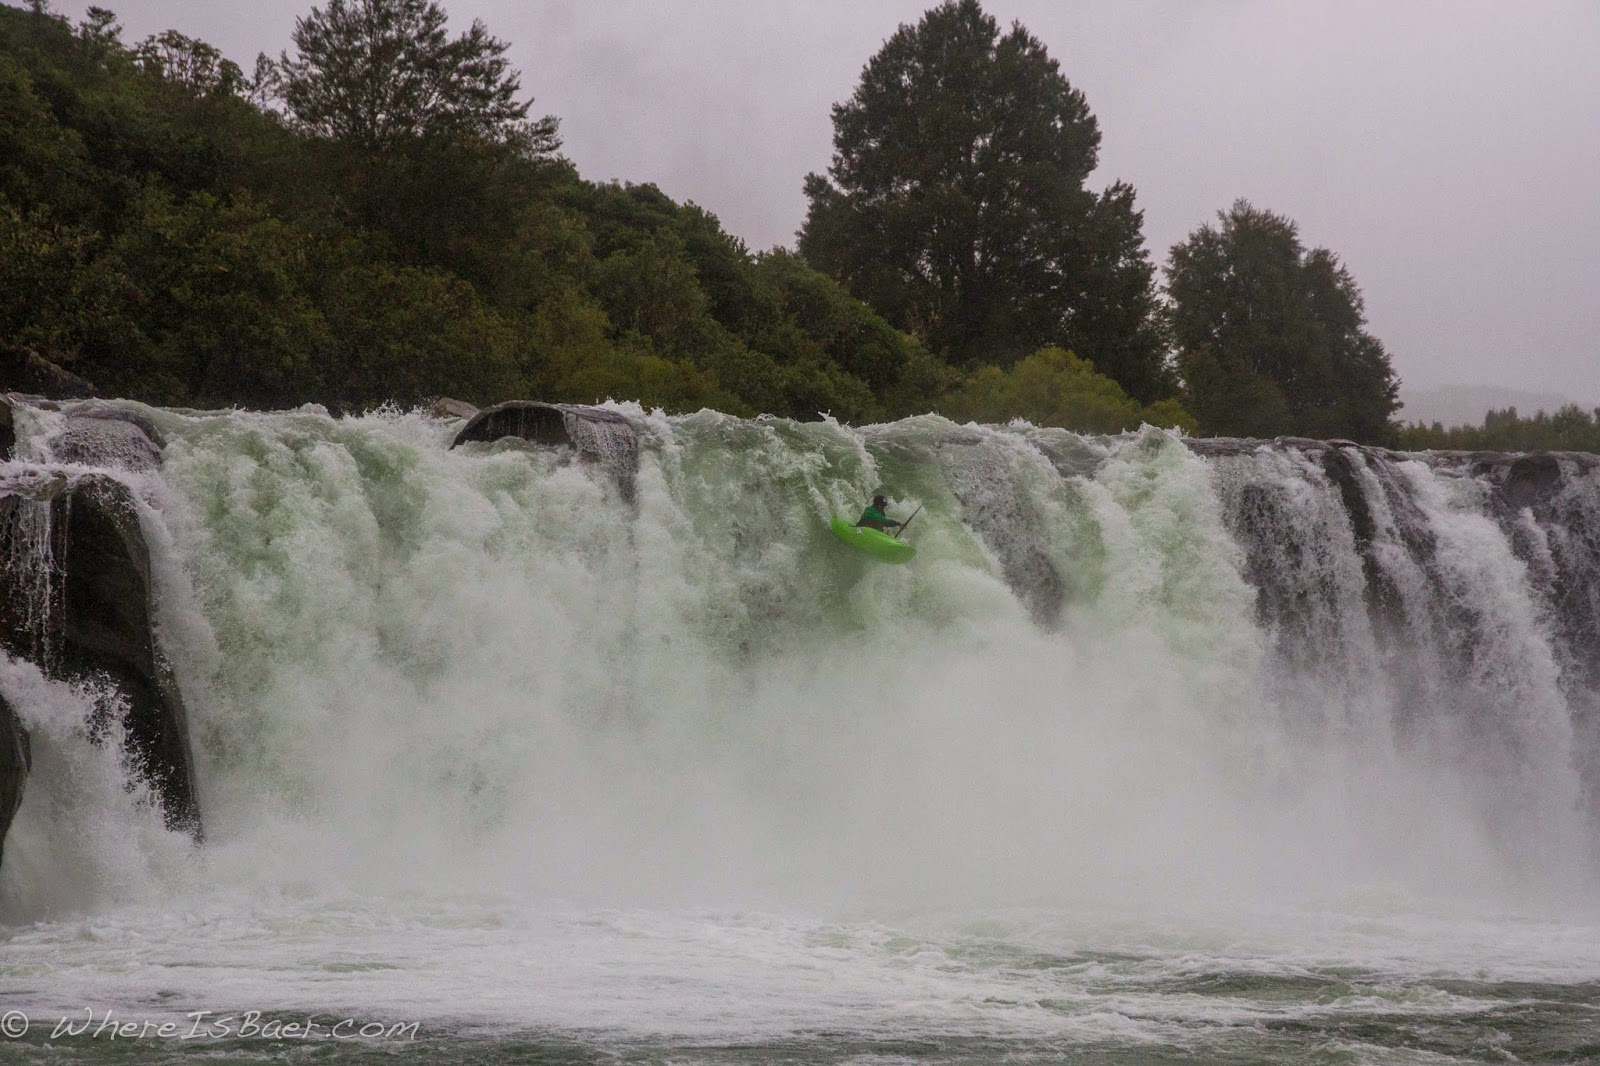 Jeff Colgrove dialing the sub 20 line, chris Baer, New Zealand, Maruia Falls, kayaker